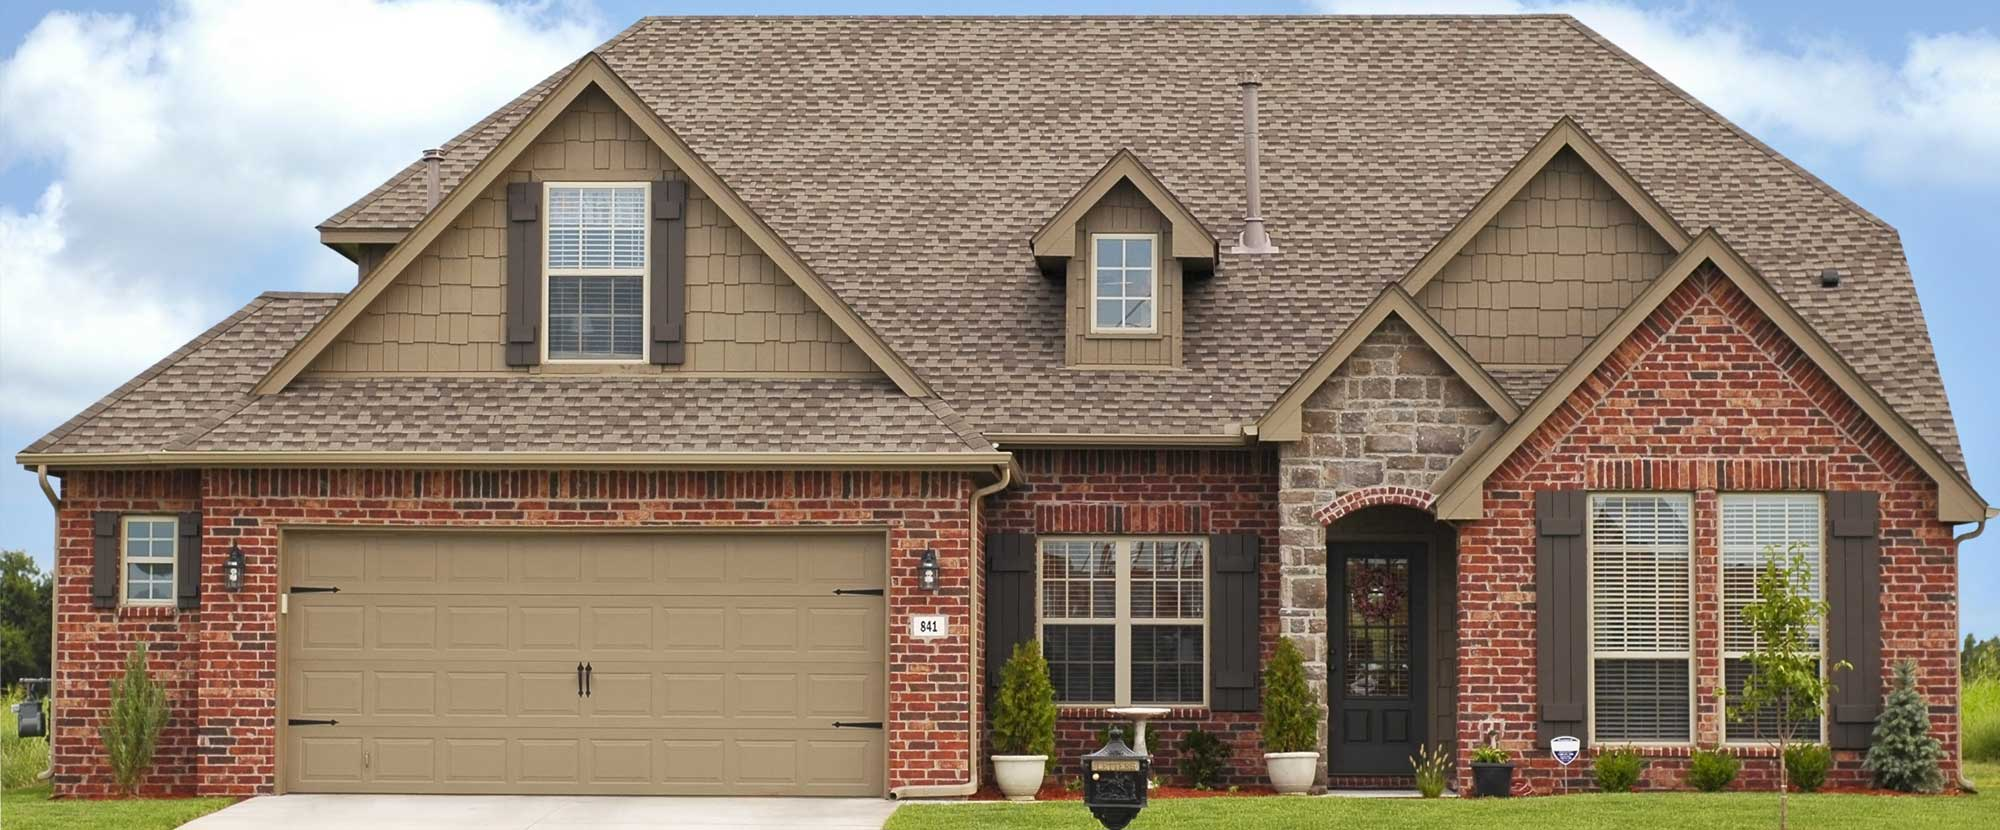 Large brick house with brown trim